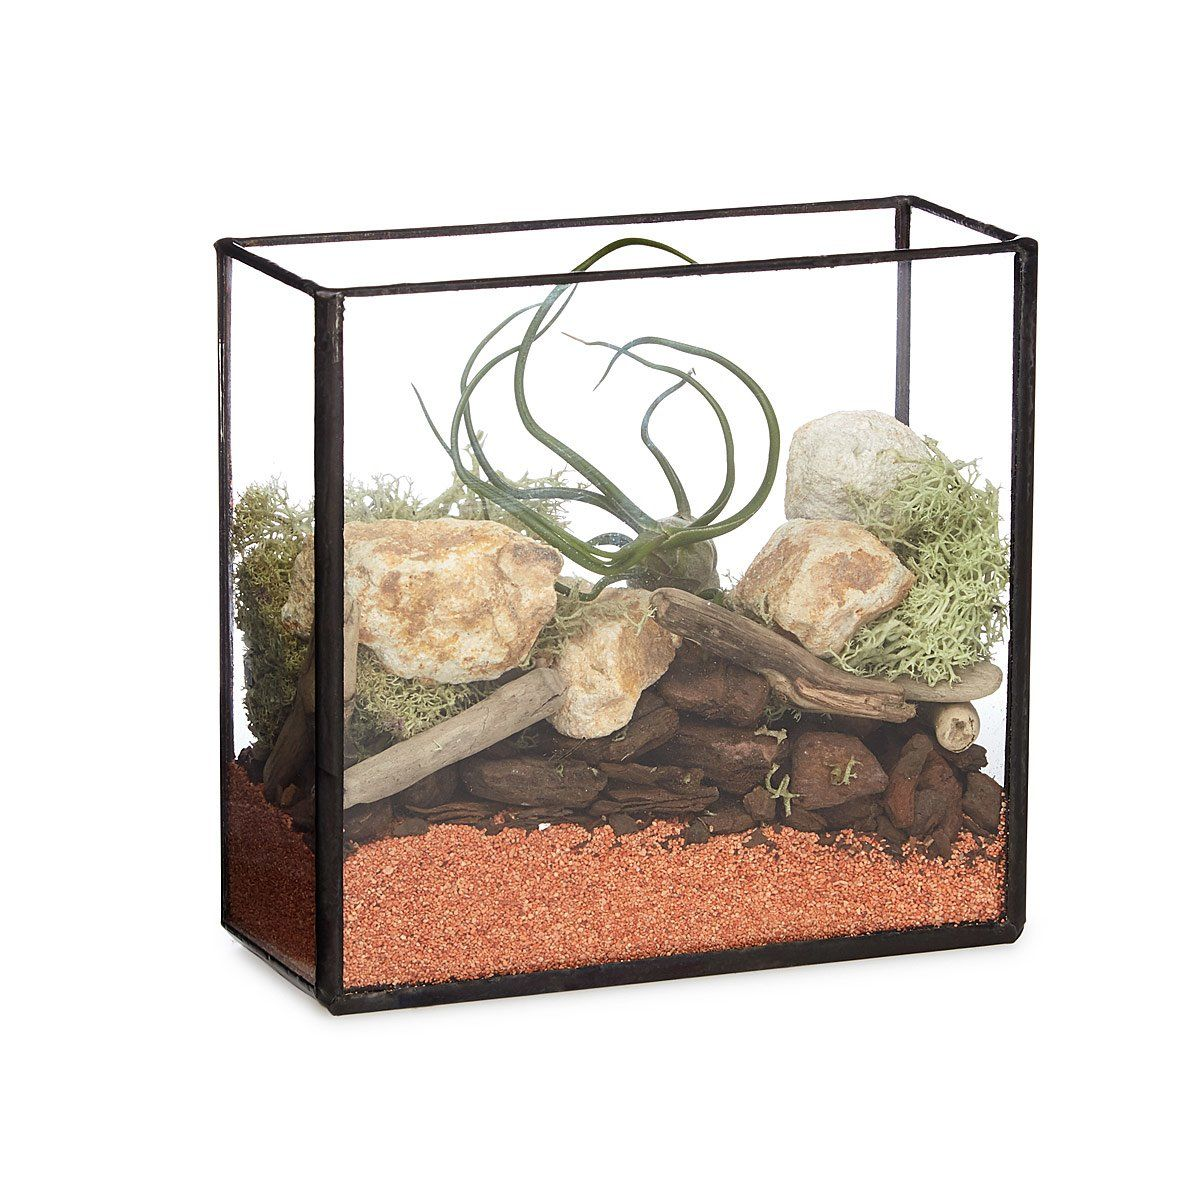 Brass box terrarium kit air plants terraria and diy terrarium this stylish do it yourself kit contains everything you need to make an air solutioingenieria Images